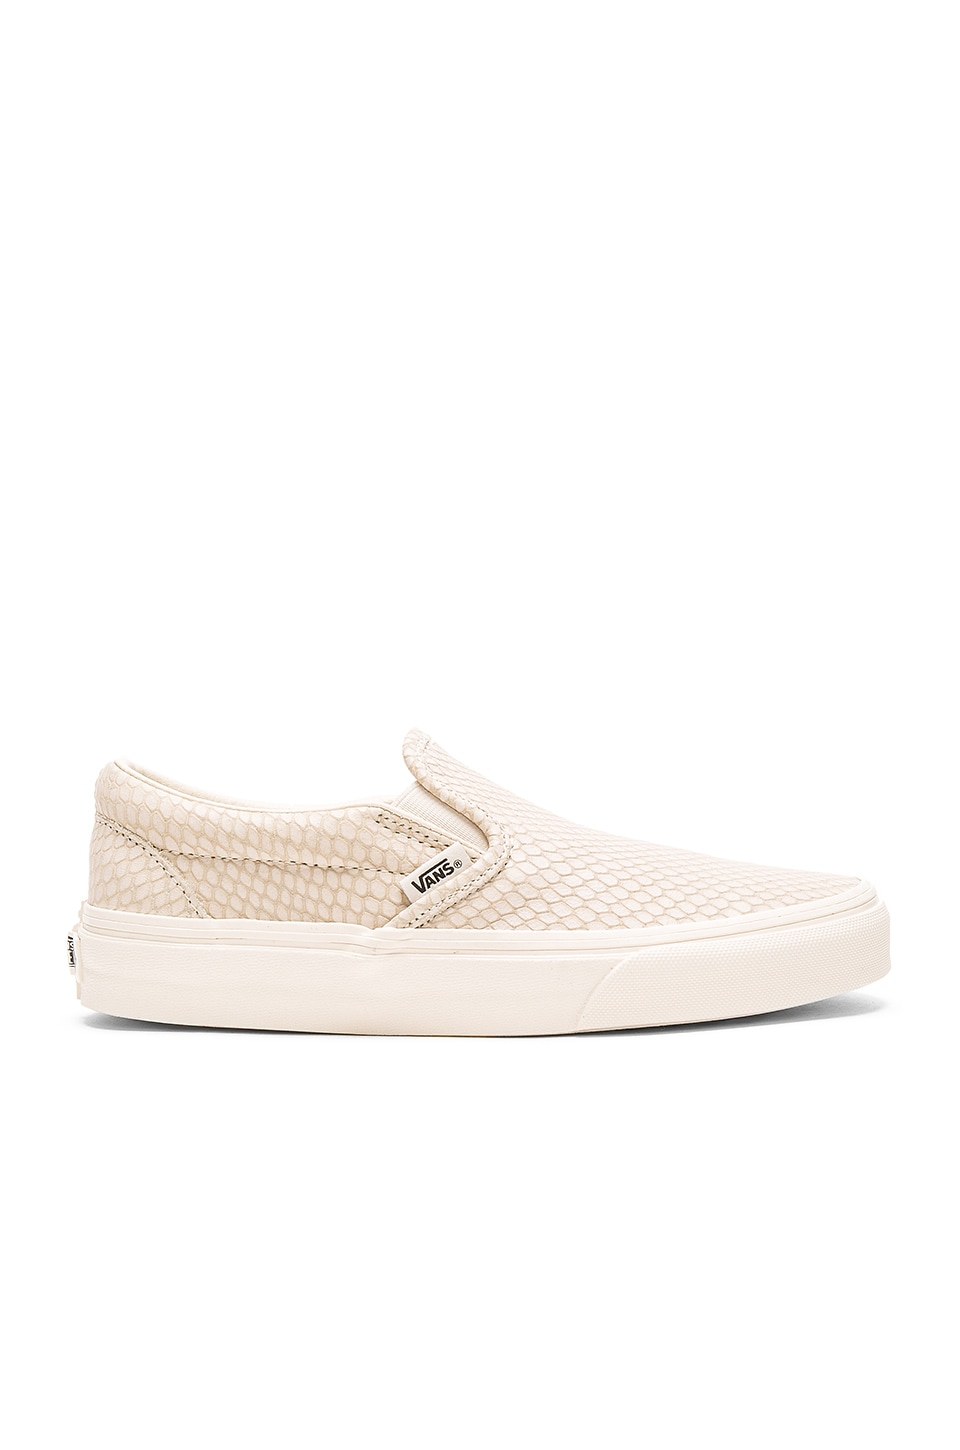 Vans Snake Leather Classic Slip-On + in Antique White